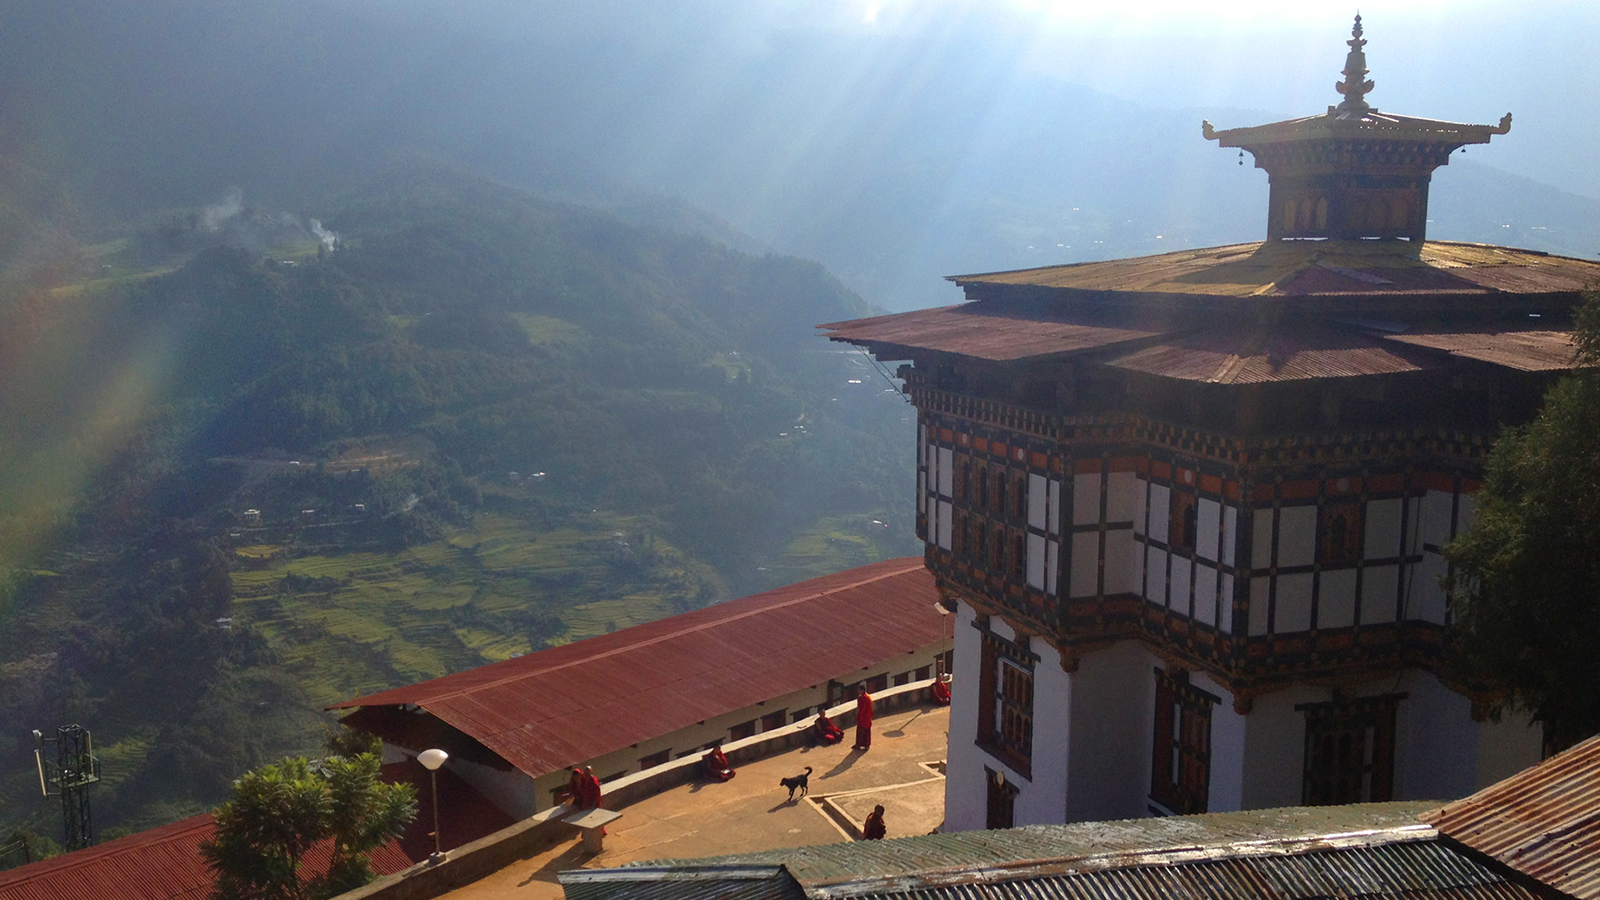 Support for development of a legal framework for cultural heritage in Bhutan